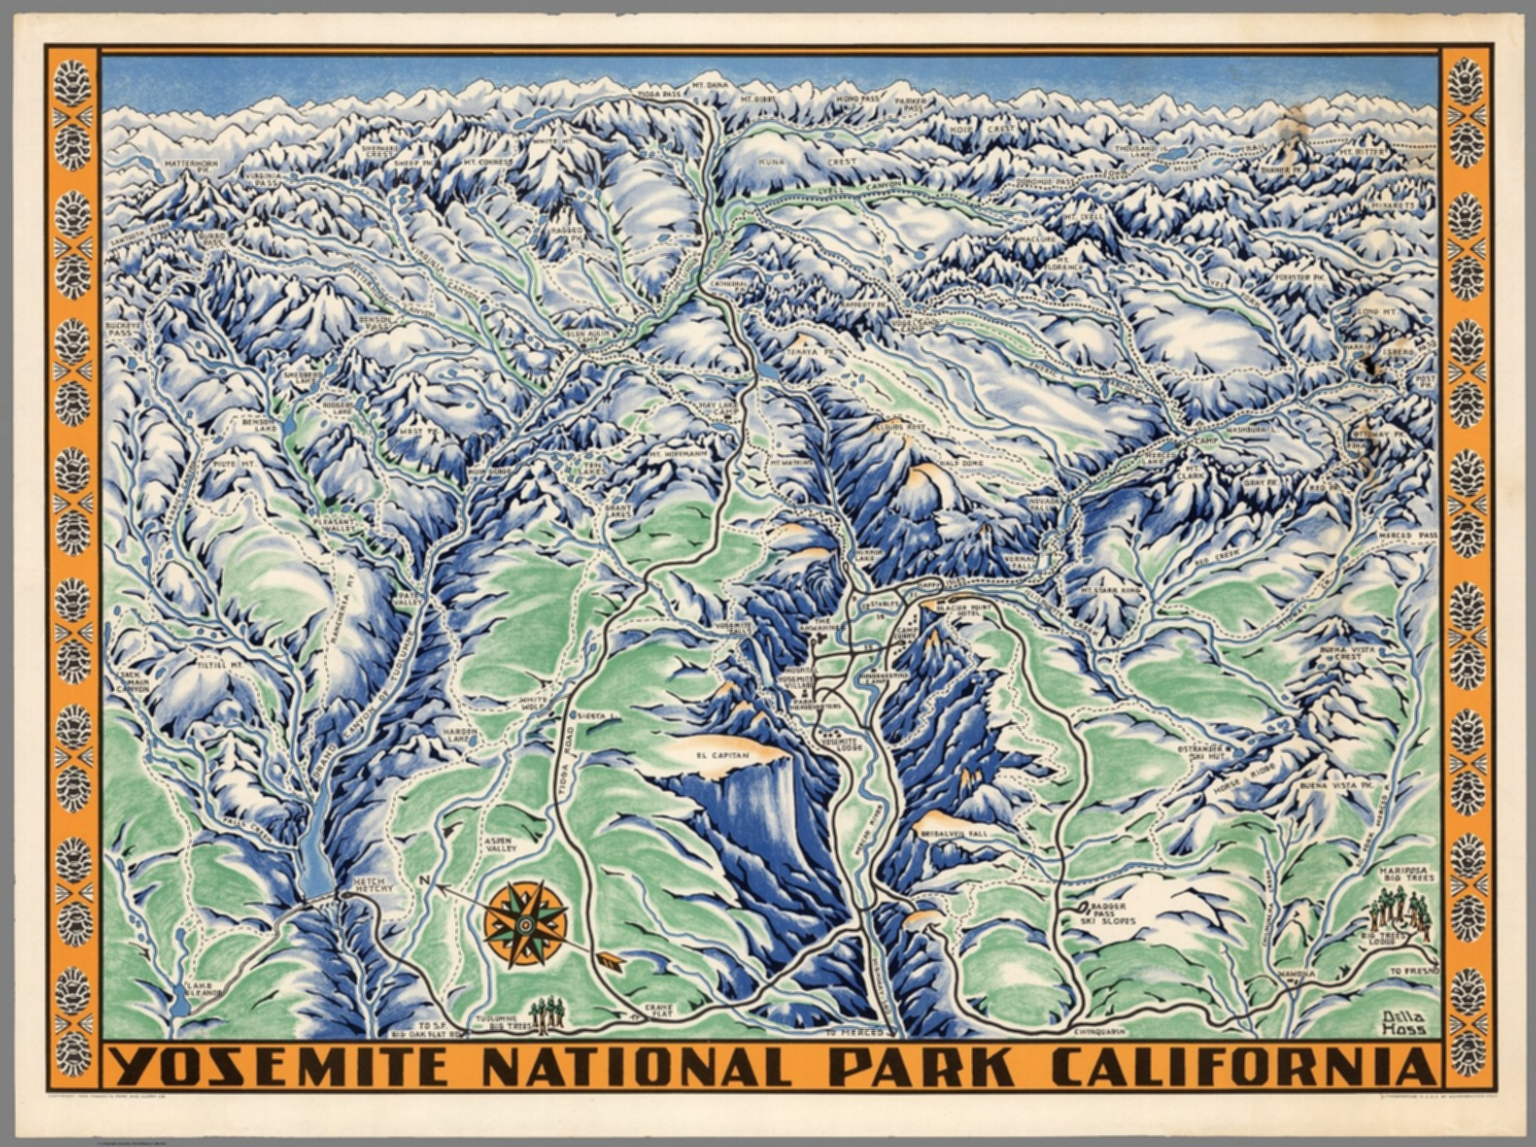 Yosemite National Park California. Della Hoss - David Rumsey ... on red bluff attractions, san diego attractions, kings canyon national park attractions, san francisco attractions, utah attractions, north dakota attractions, sequoia national forest attractions, palm springs attractions, new jersey attractions, monterey attractions, seattle attractions, mexico city attractions, carlsbad attractions, california attractions, death valley attractions, new mexico attractions, bay of fundy attractions, newport beach attractions, hawaii attractions, niagara falls attractions,